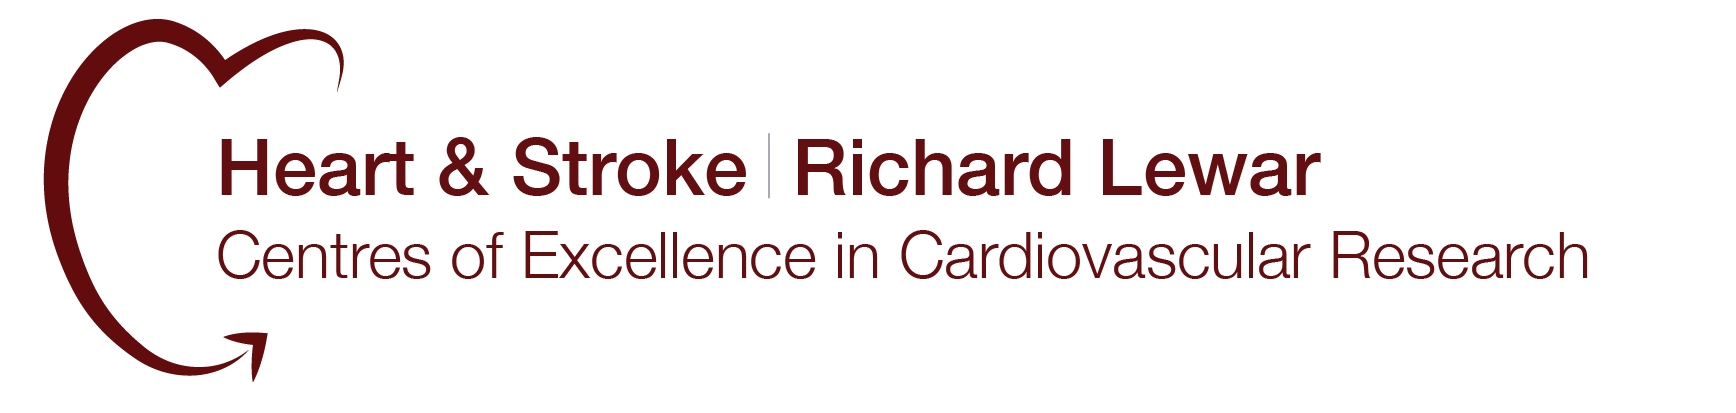 Université de Toronto - Heart & Stroke / Richard Lewar Centre of Excellence in Cardiovascular Research